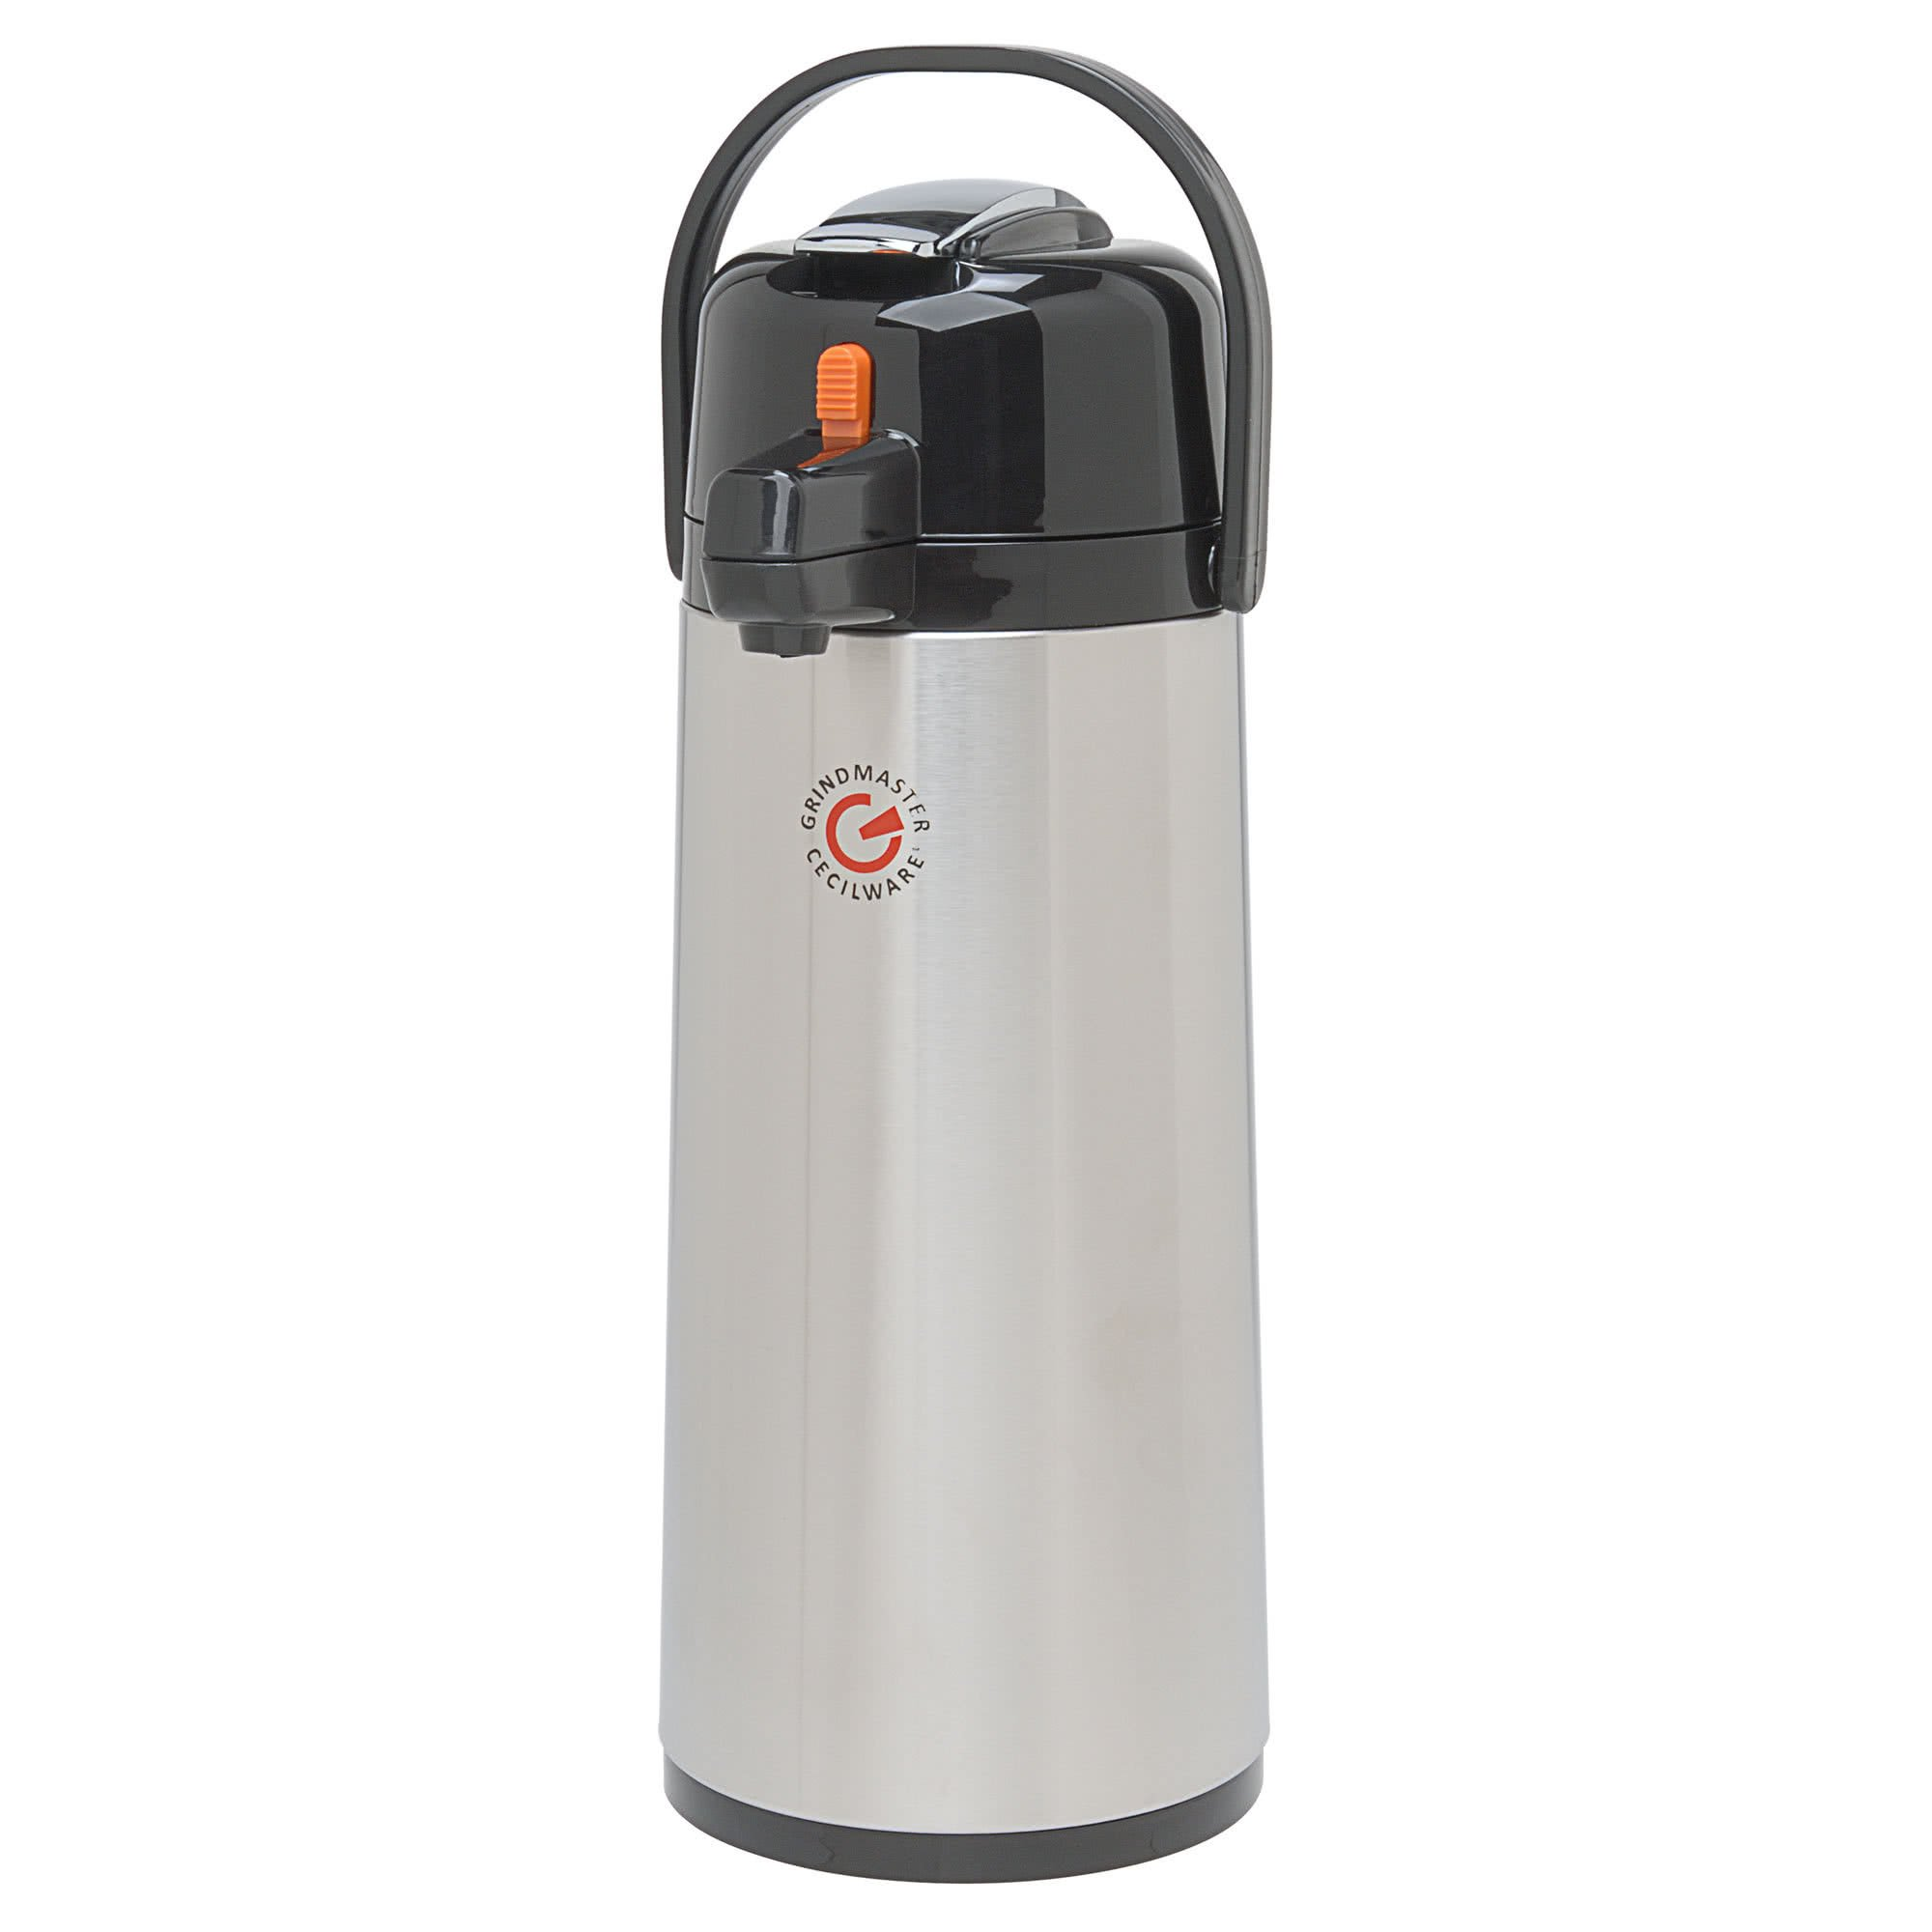 TableTop King 70767-C 2.2 Liter Glass Lined Decaf Airpot with Orange Lever - 6/Case